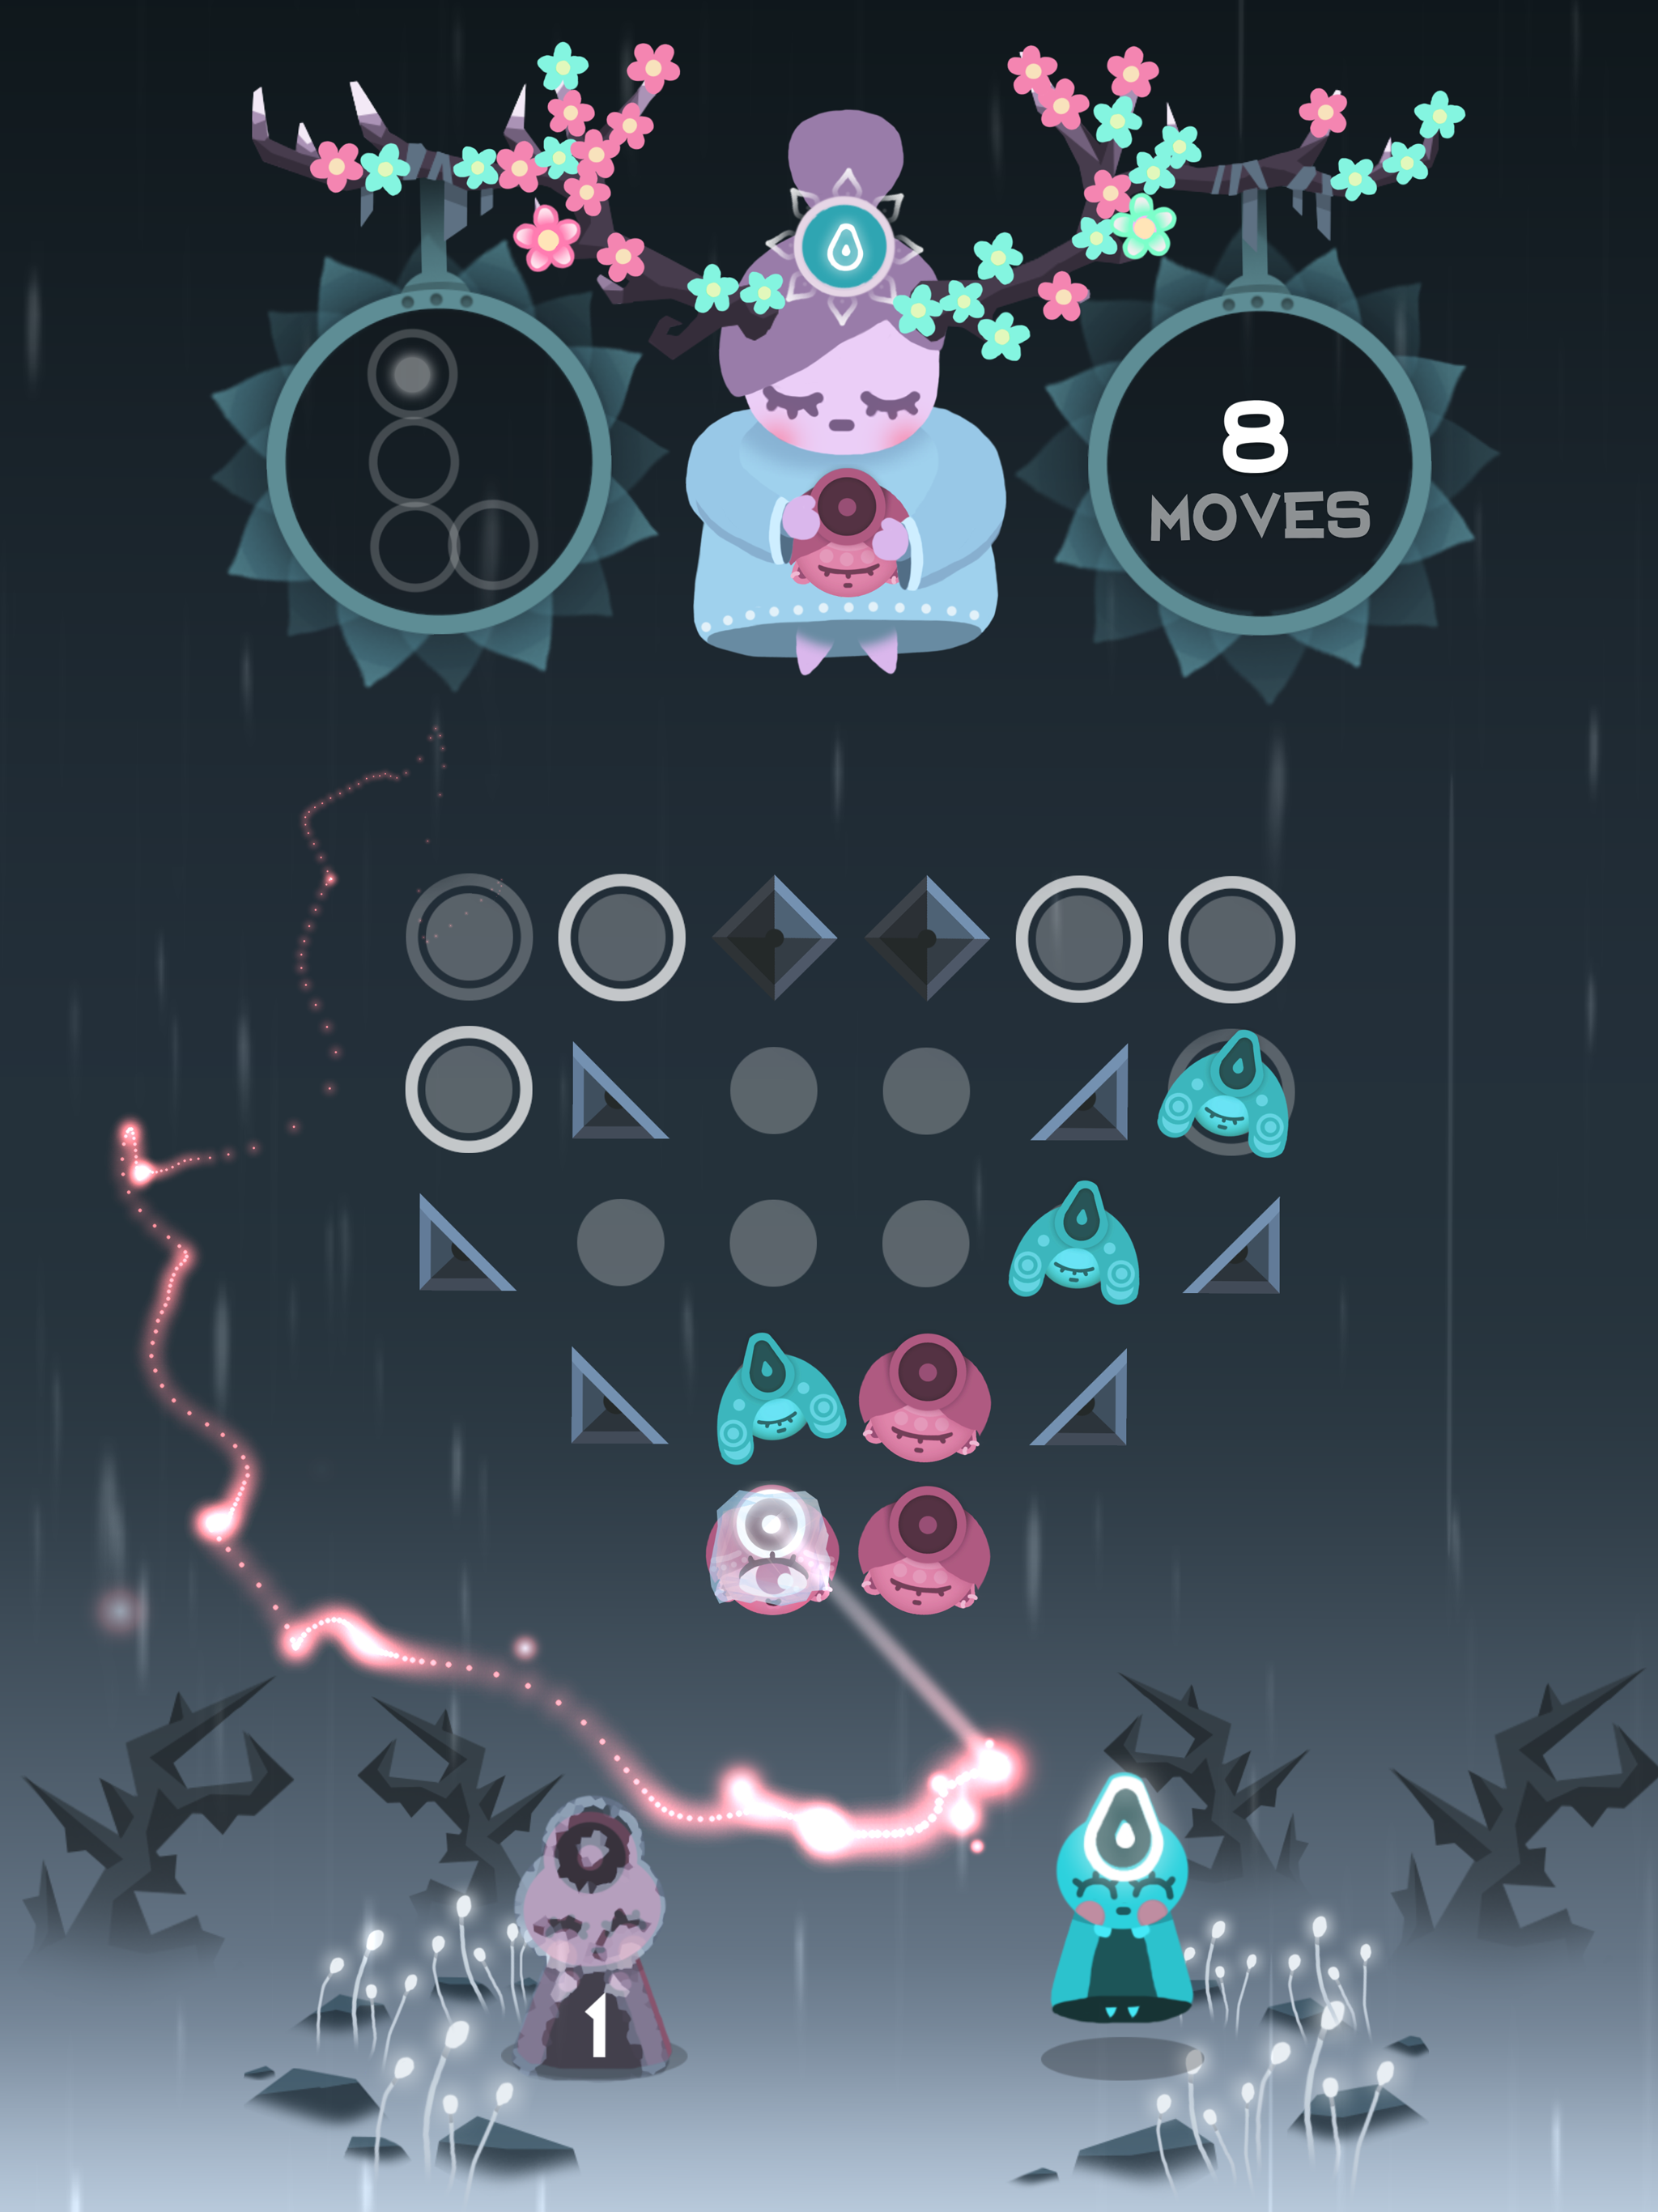 Ruya - Game created by Miracle Tea